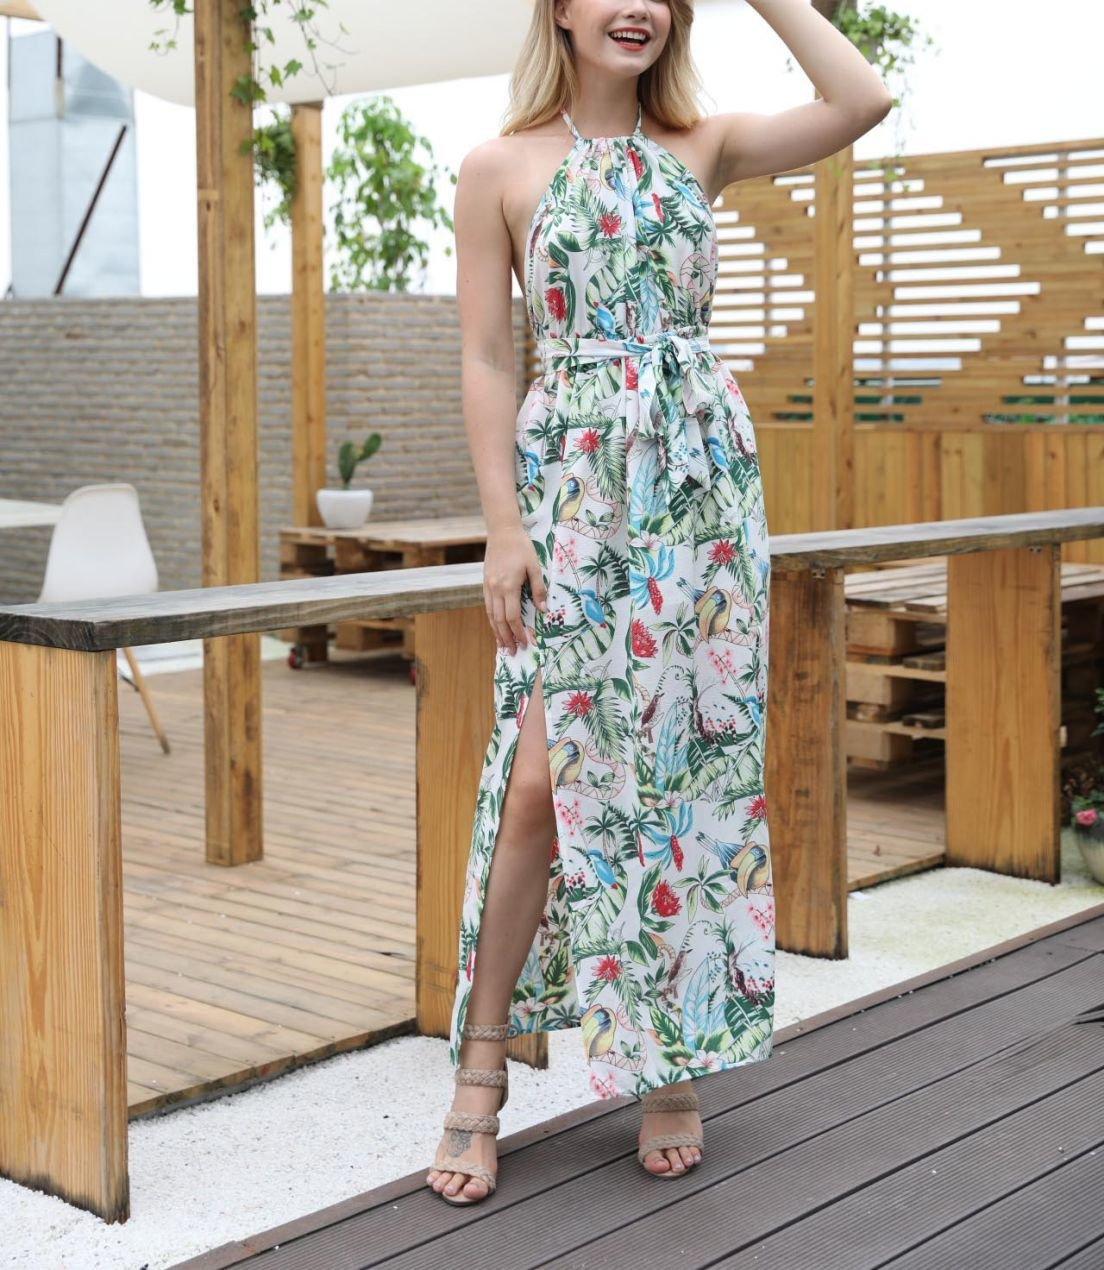 Backless Casual Dress in Tropical Print